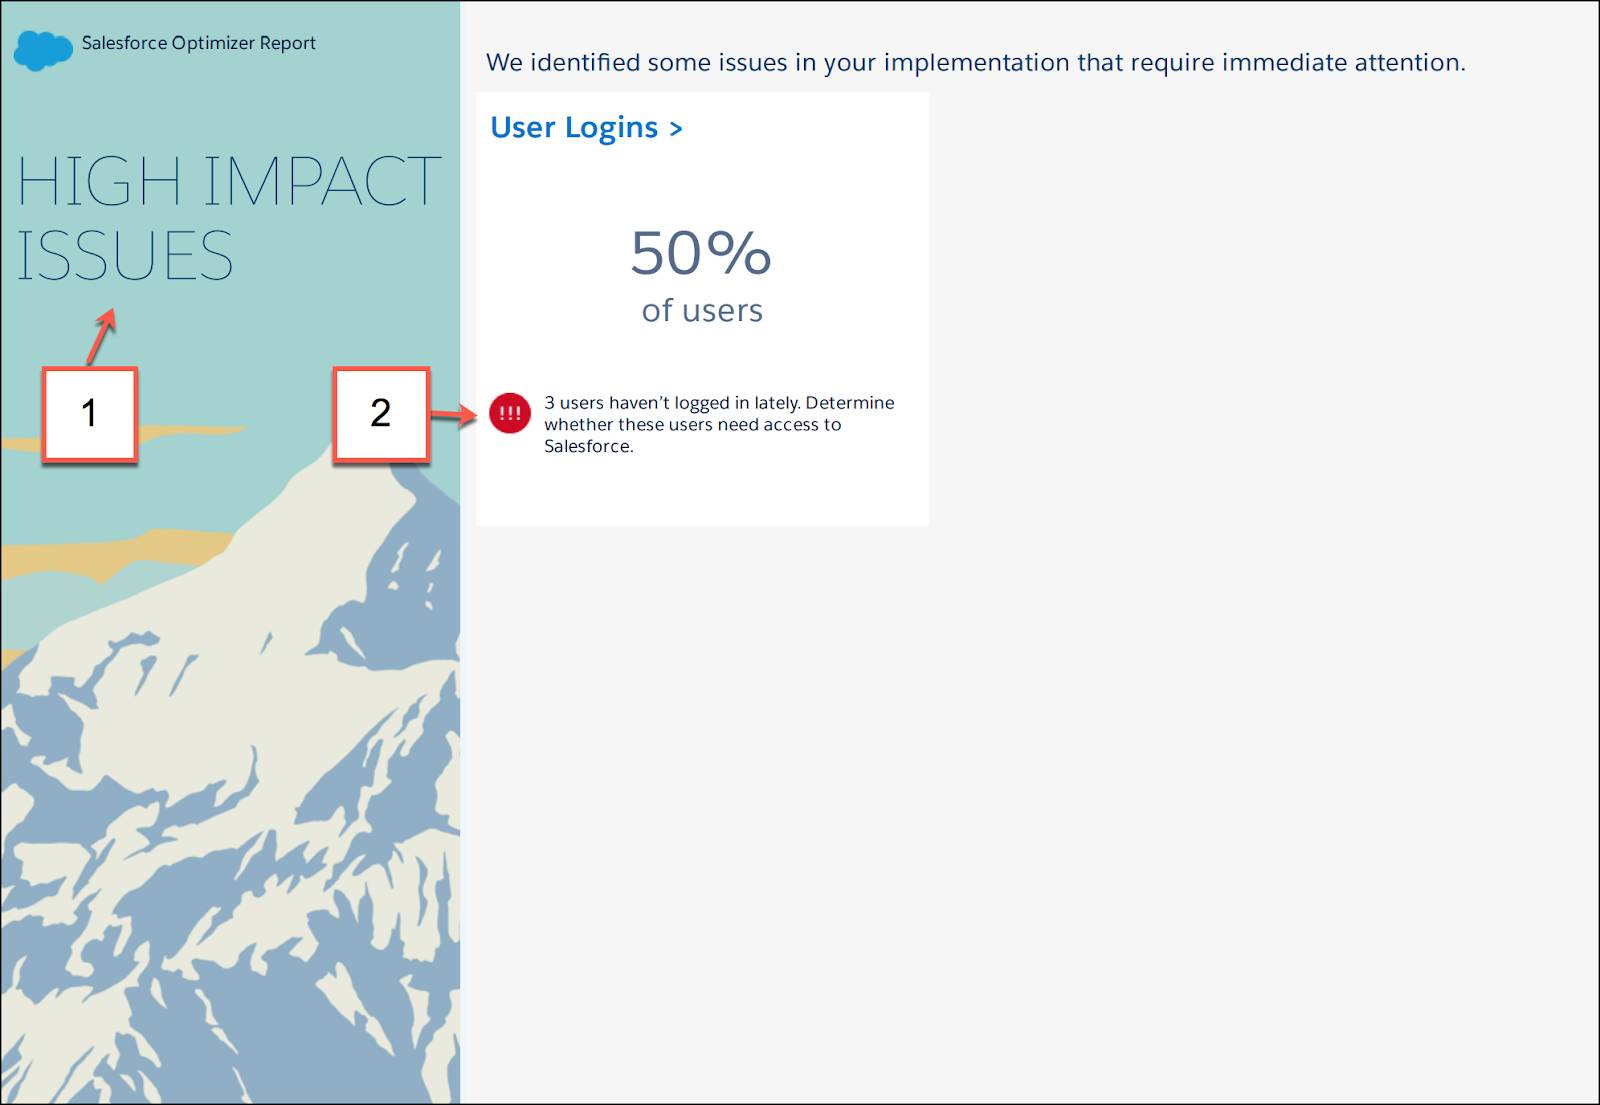 Highlights and high impact issues found by Salesforce Optimizer